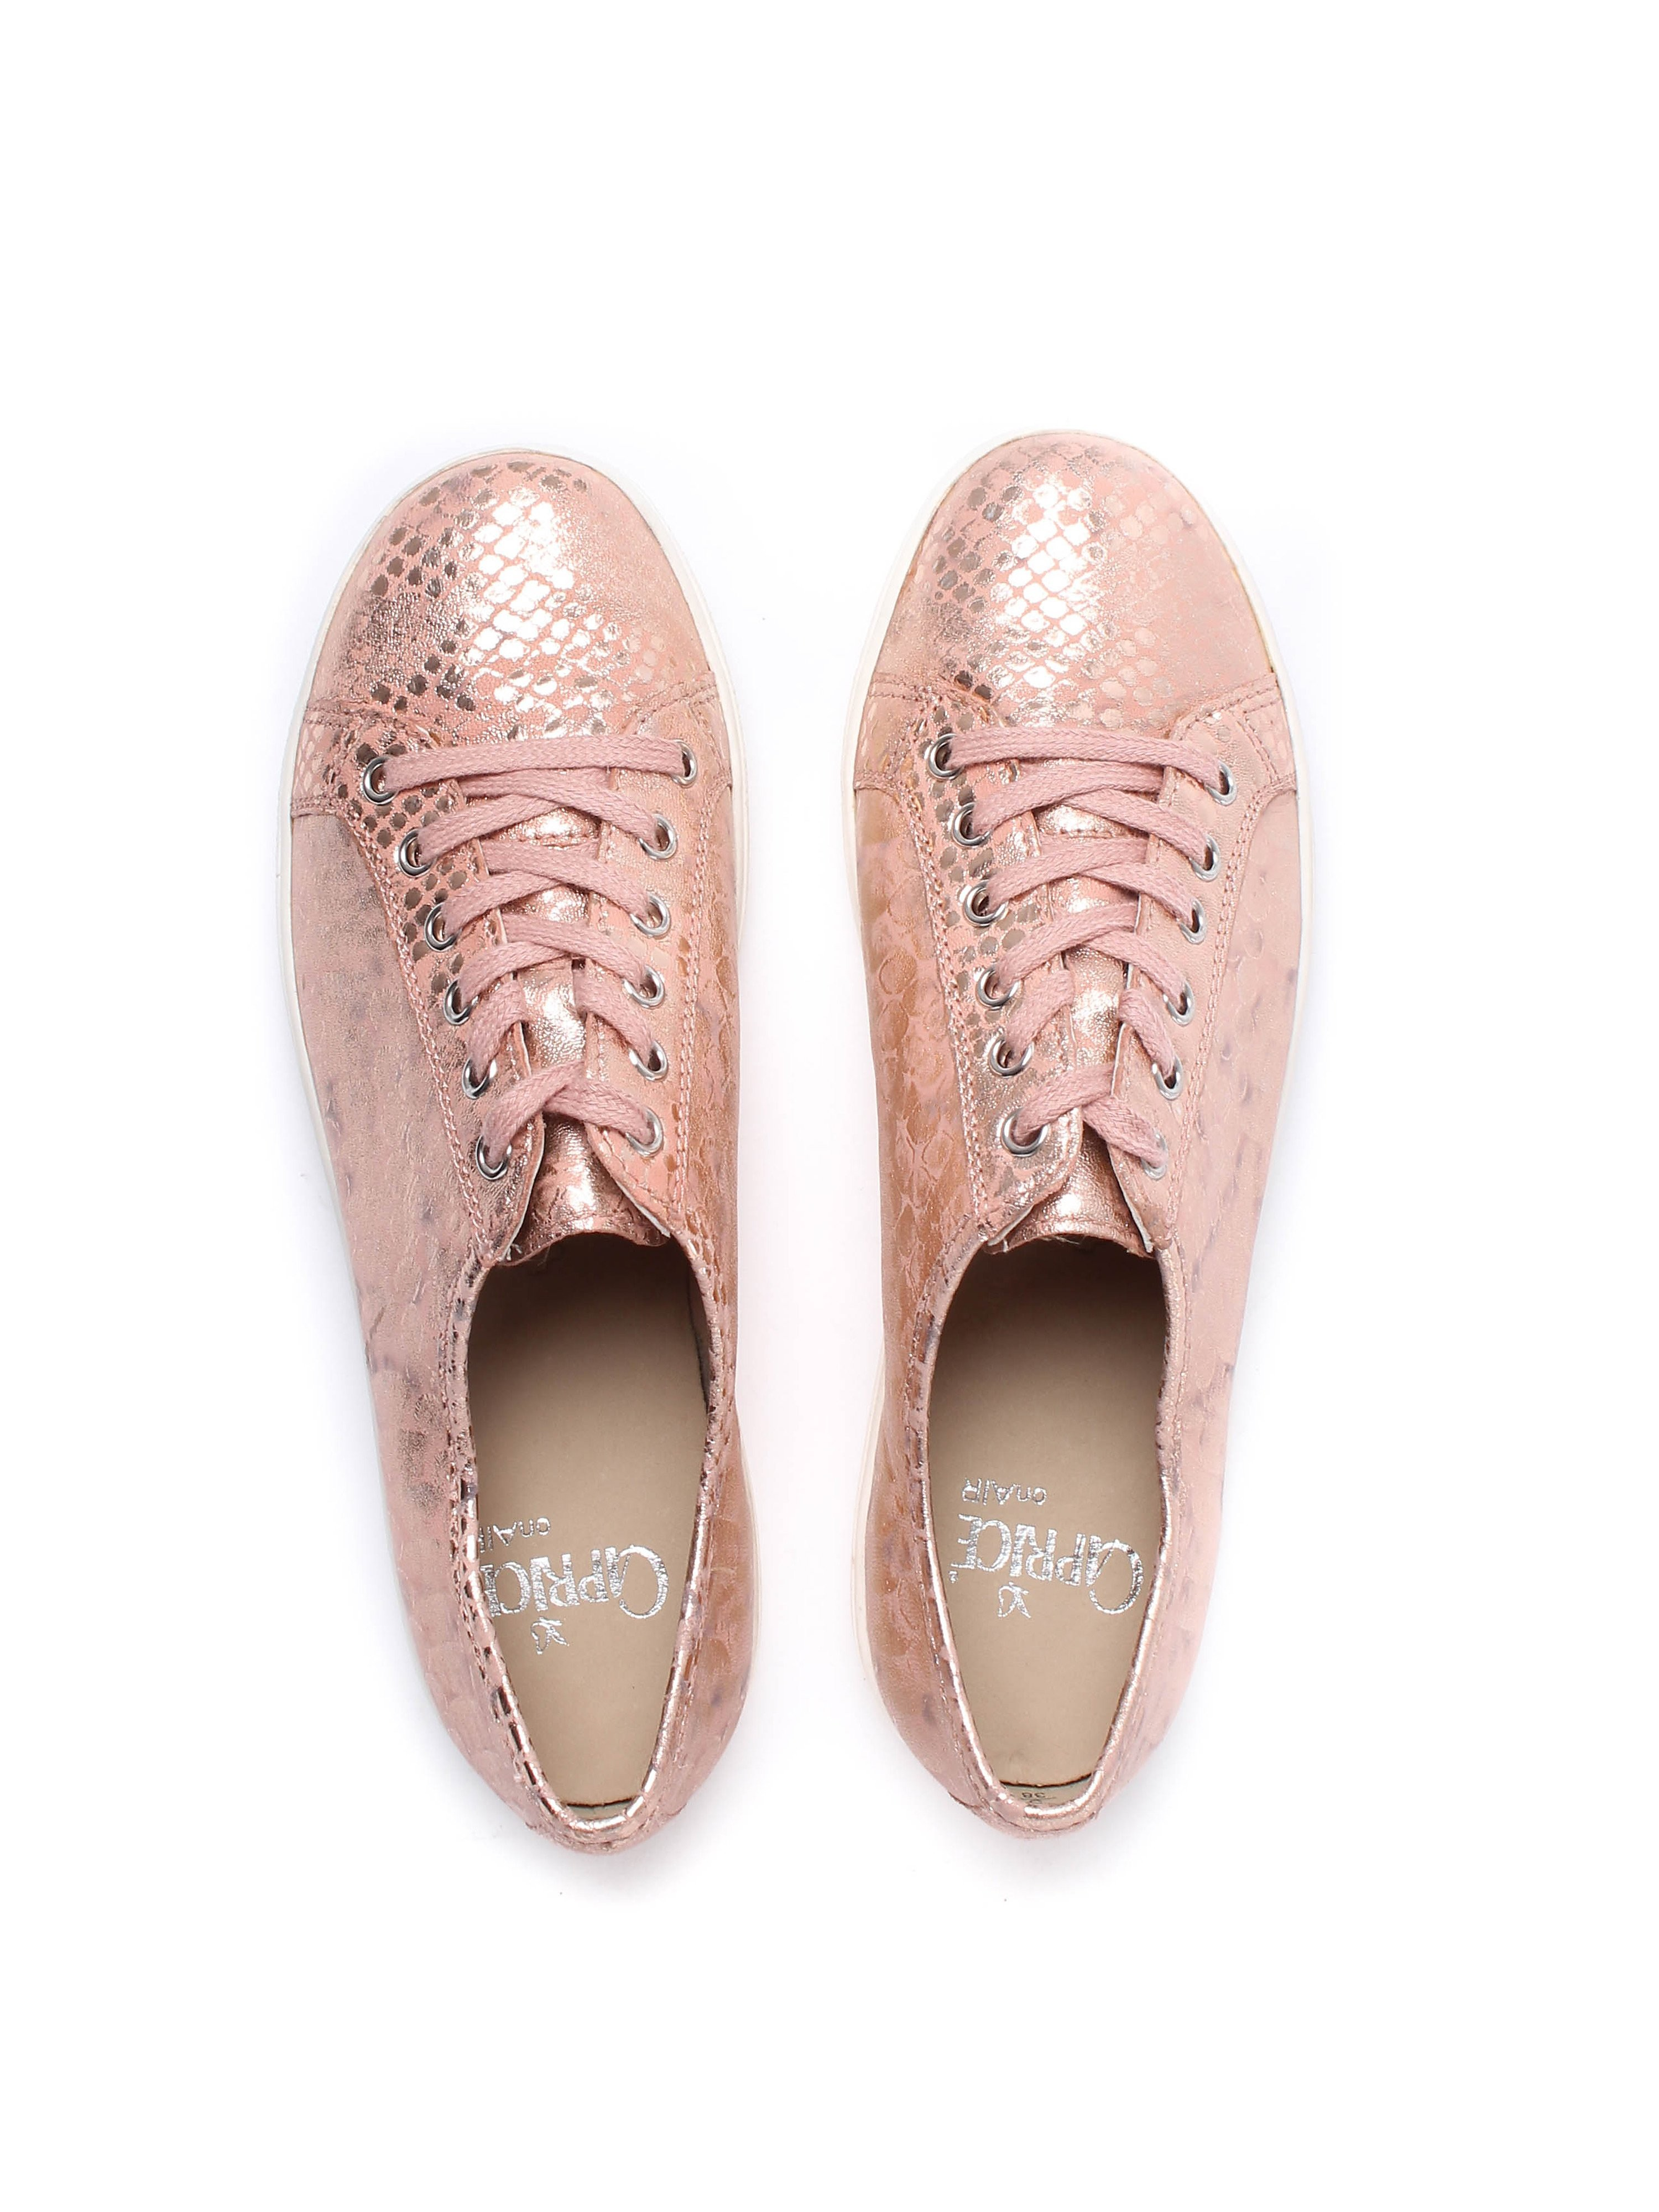 Caprice Women's Snake Effect Leather Trainers - Rose Metallic